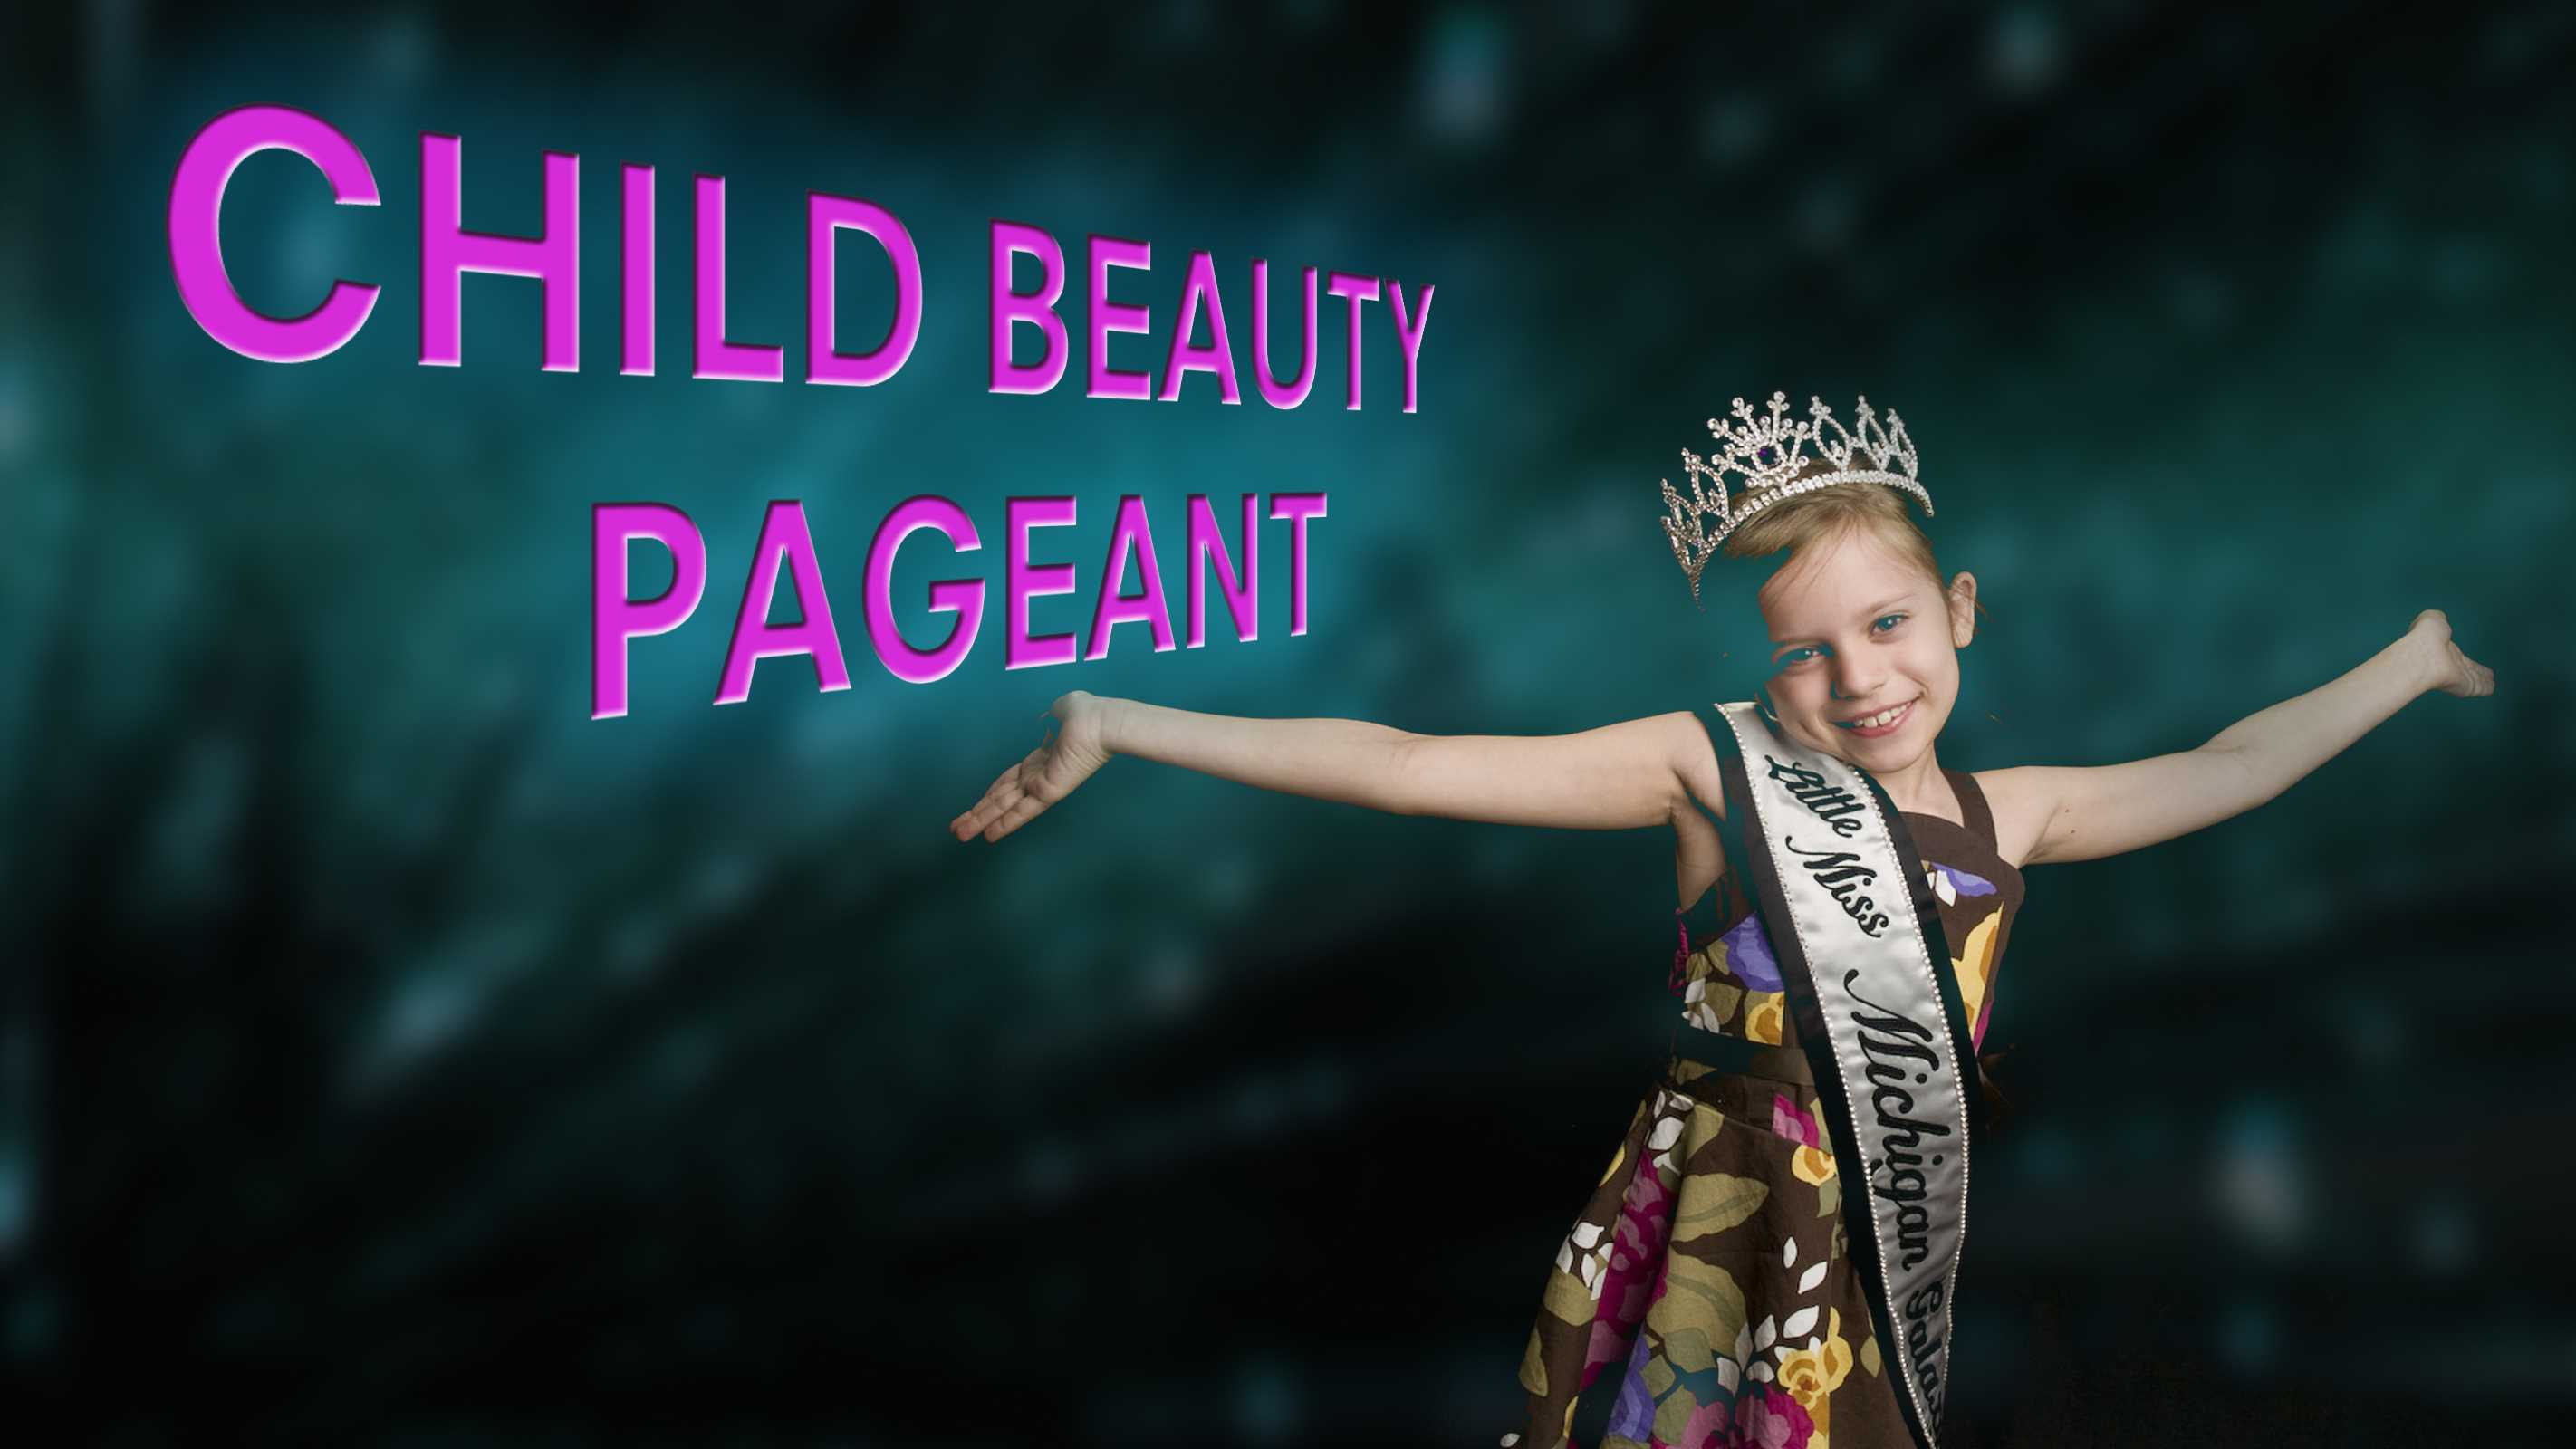 beauty contest essay edrc announces be you tiful poetry essay  should child beauty pageants be banned netivist